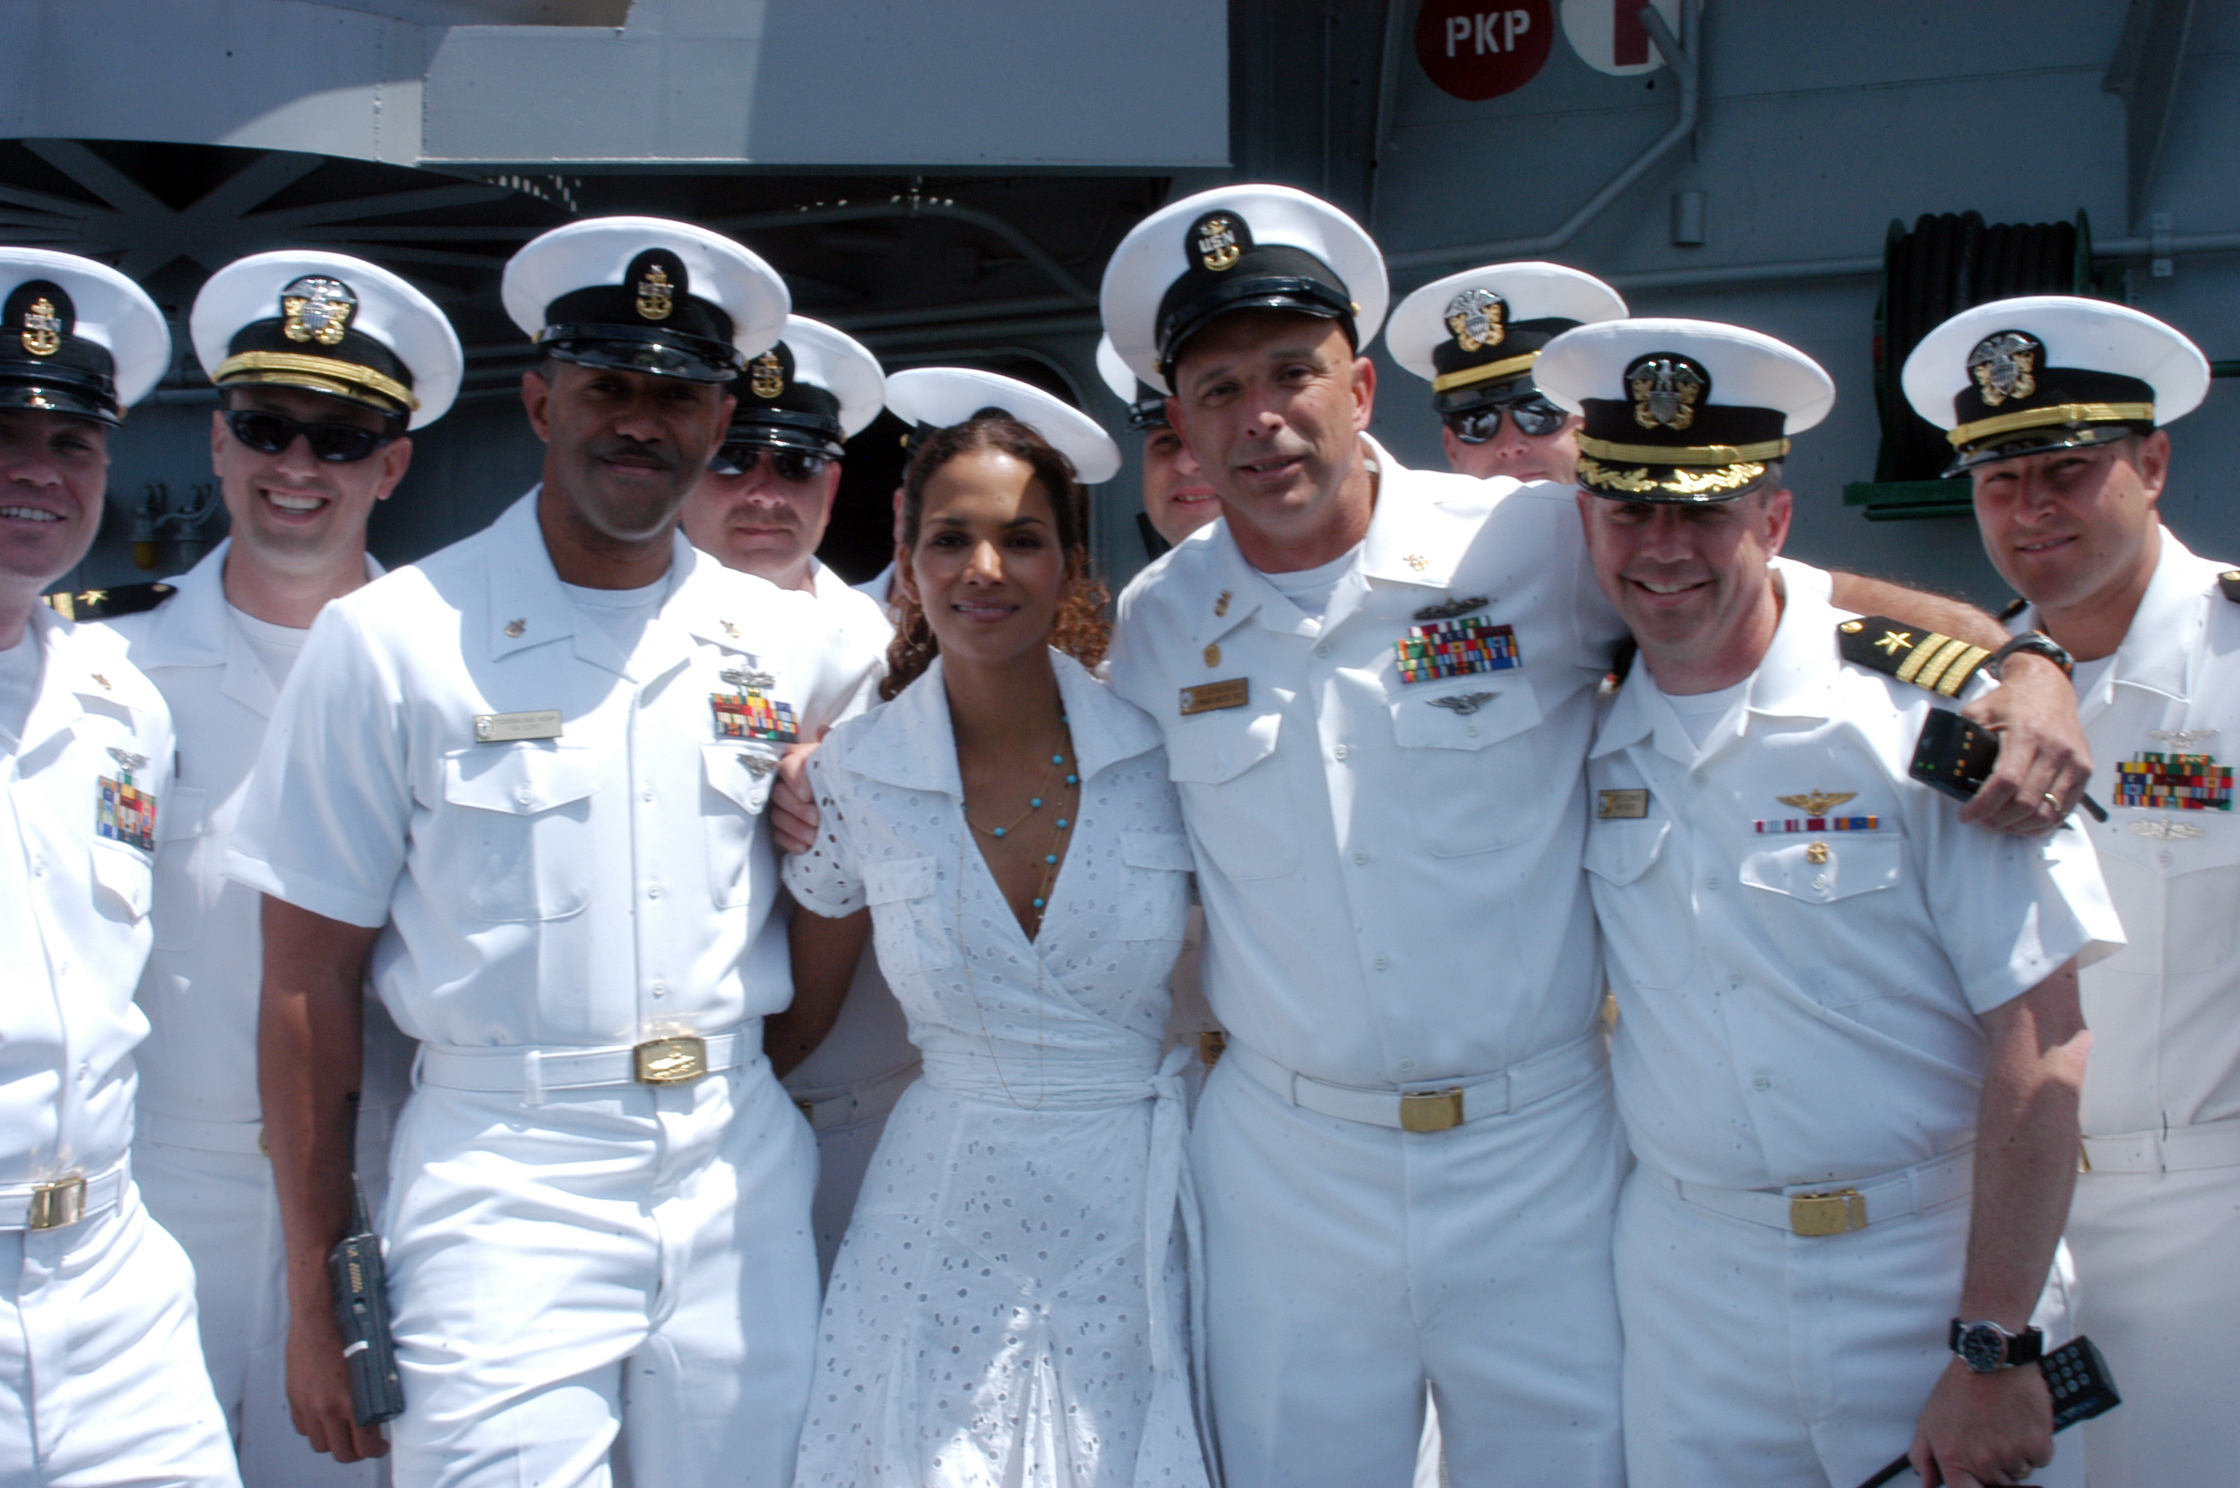 File:US Navy 060524-N-1371G-269 U.S. Navy Fleet Week New York 2006 ...